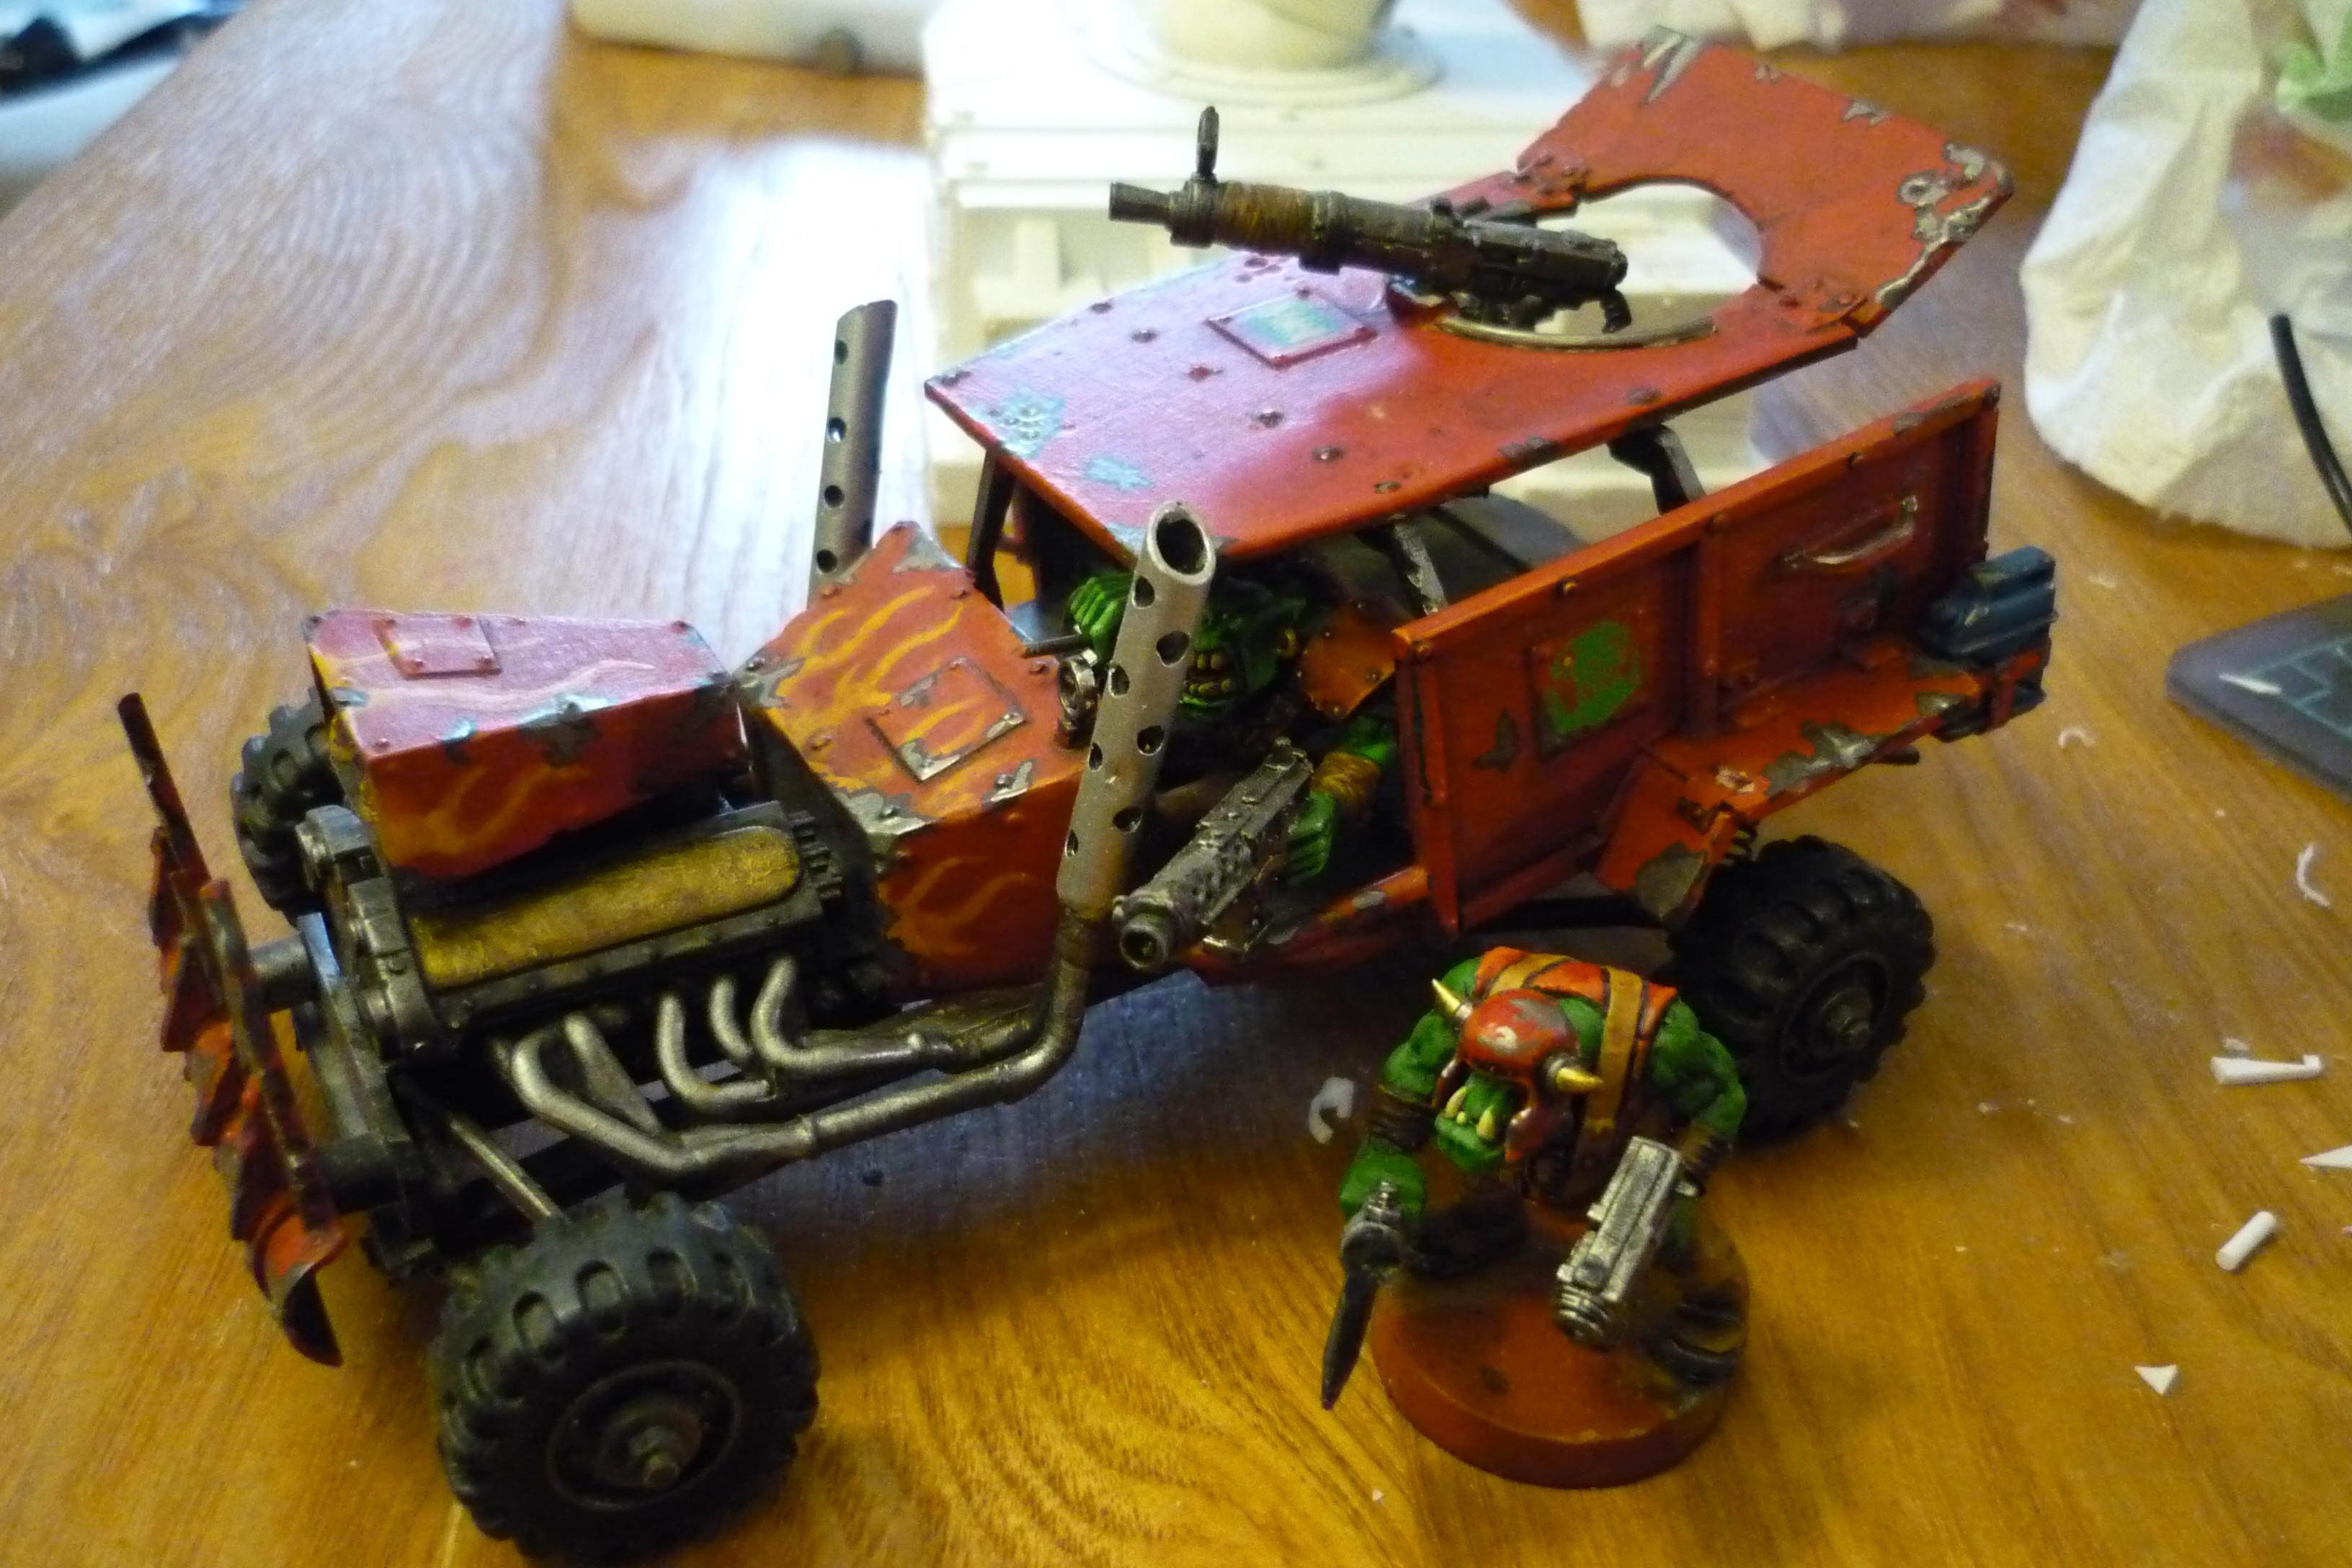 Buggy, Conversion, Orks, Scratch Build, Warbuggy, Warhammer 40,000